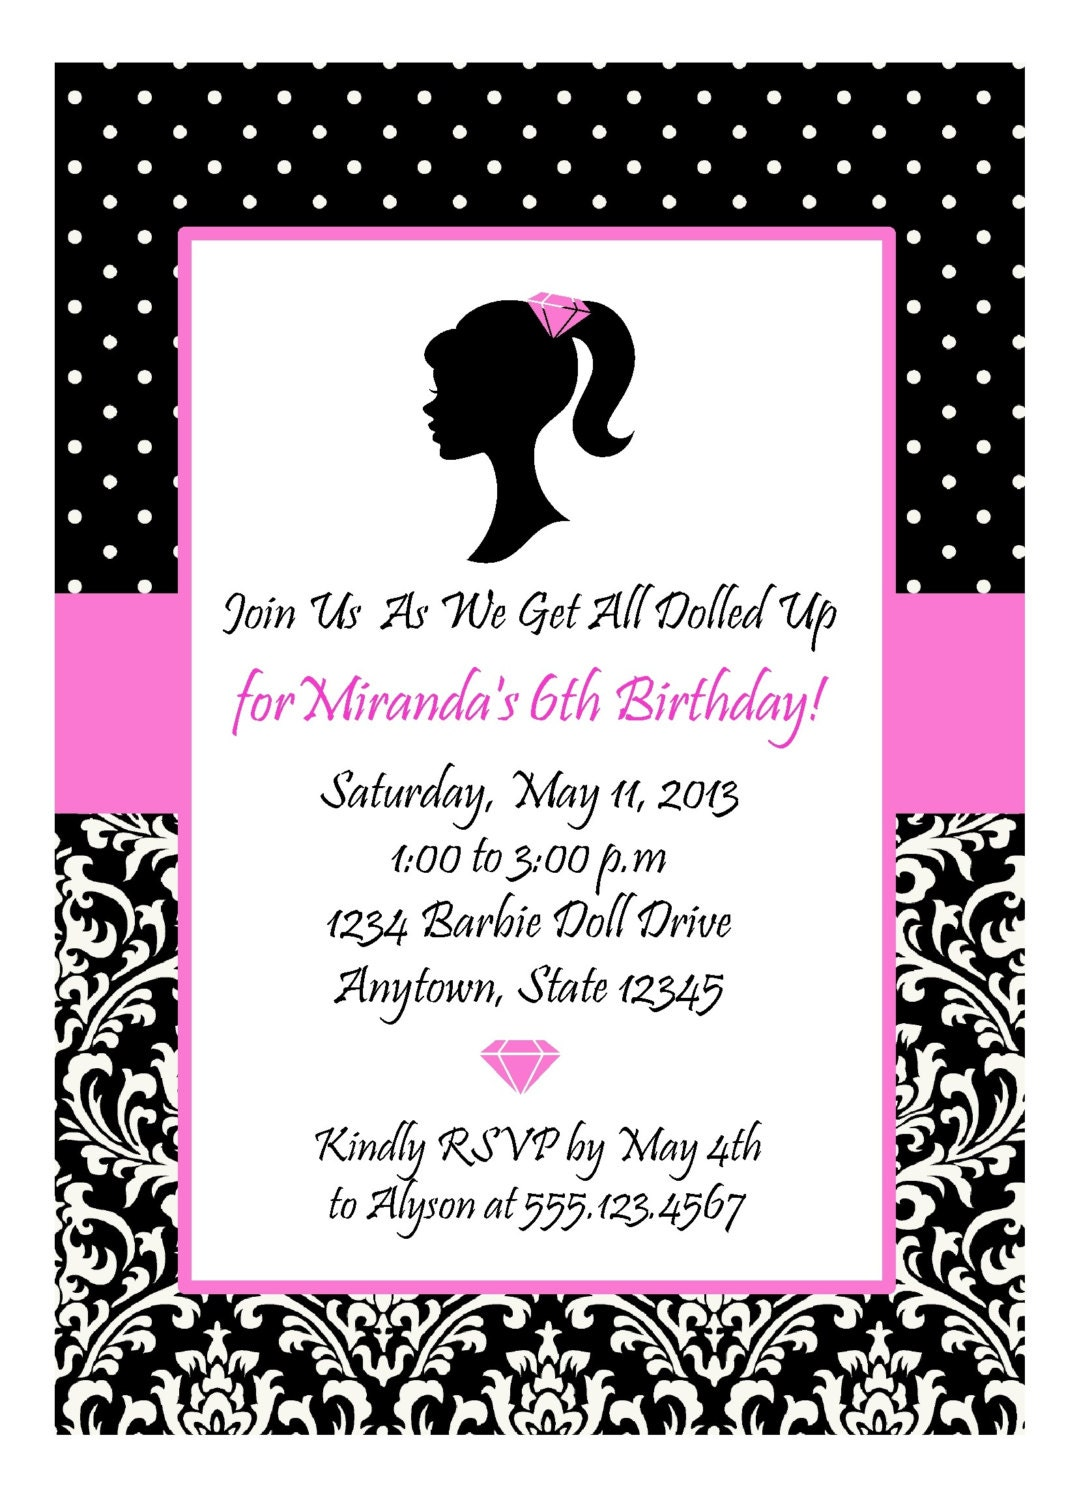 GLAMOUR GIRL DIVA Party Hot Pink and Black Invitation / | Etsy